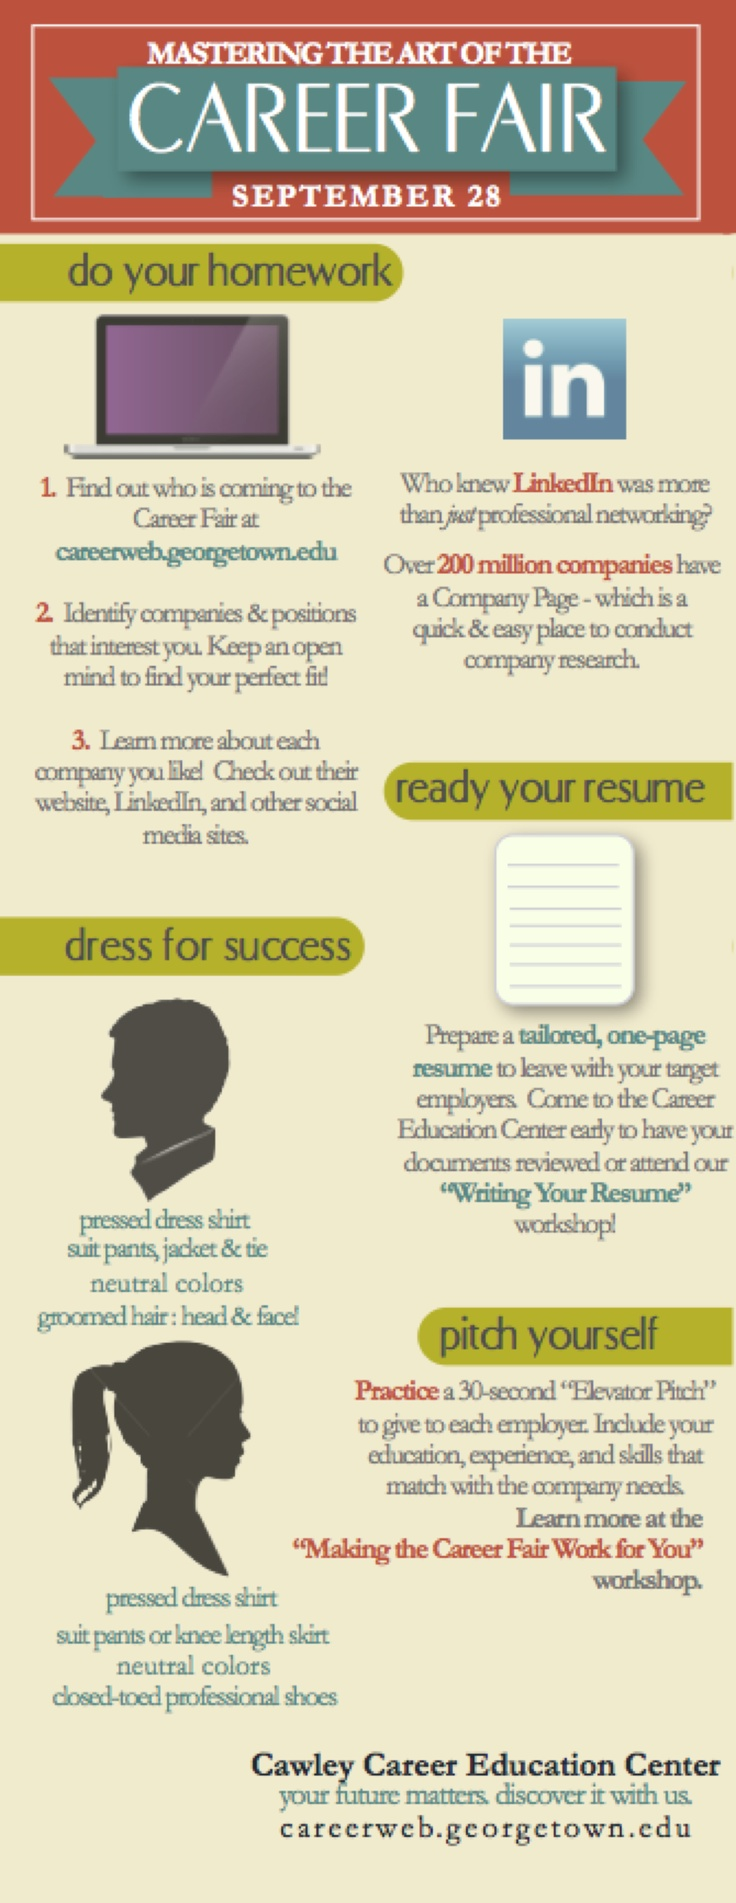 images about career fair tips tricks career fair preparation infovisual designed by k sargent georgetown career education center